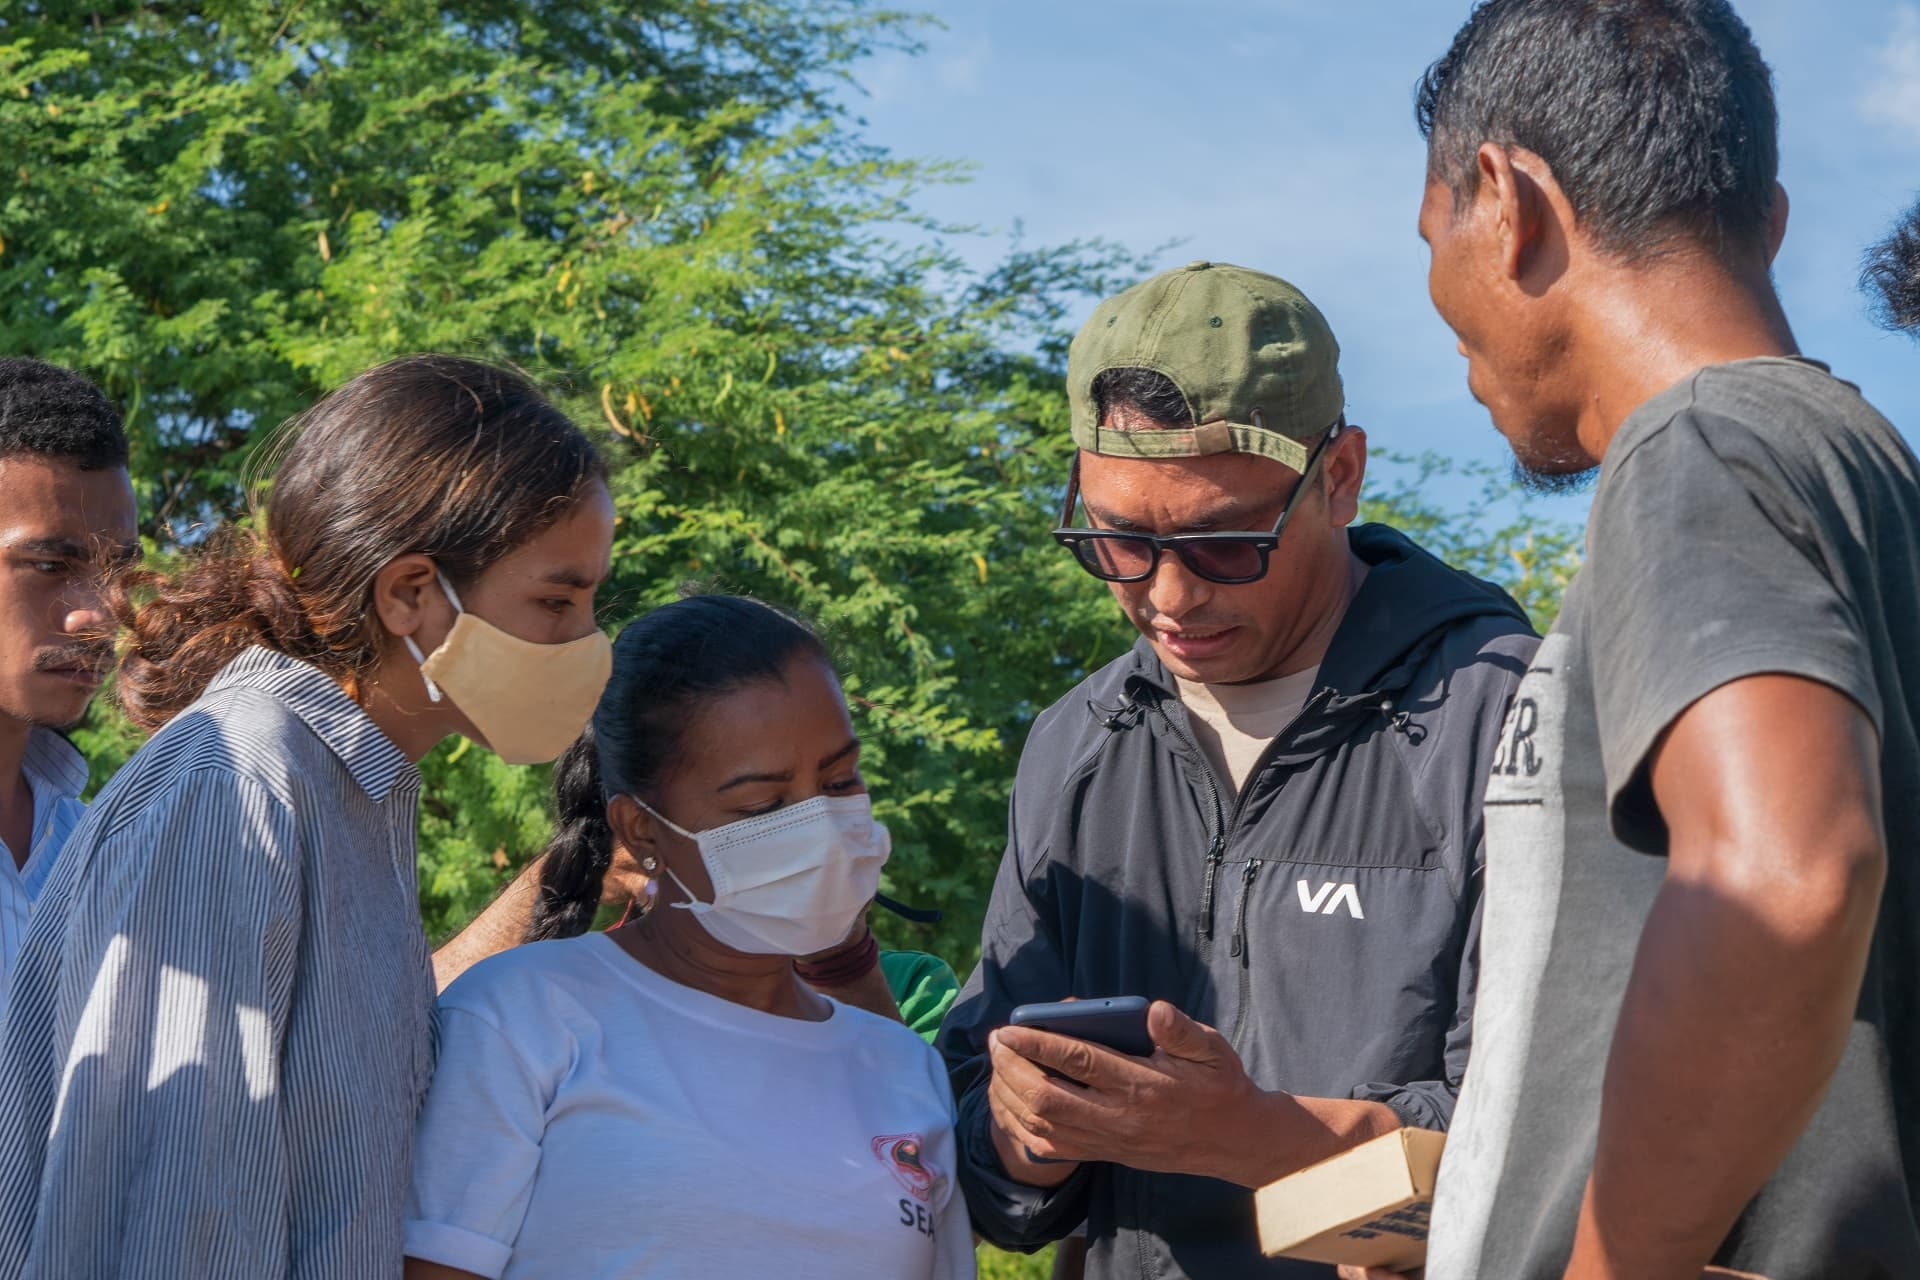 Joctan Lopes (second right) demonstrating a fisheries mobile application to youth data collectors hired by the Ministry of Agriculture and Fisheries of Timor-Leste. Photo supplied by Joctan Lopes.